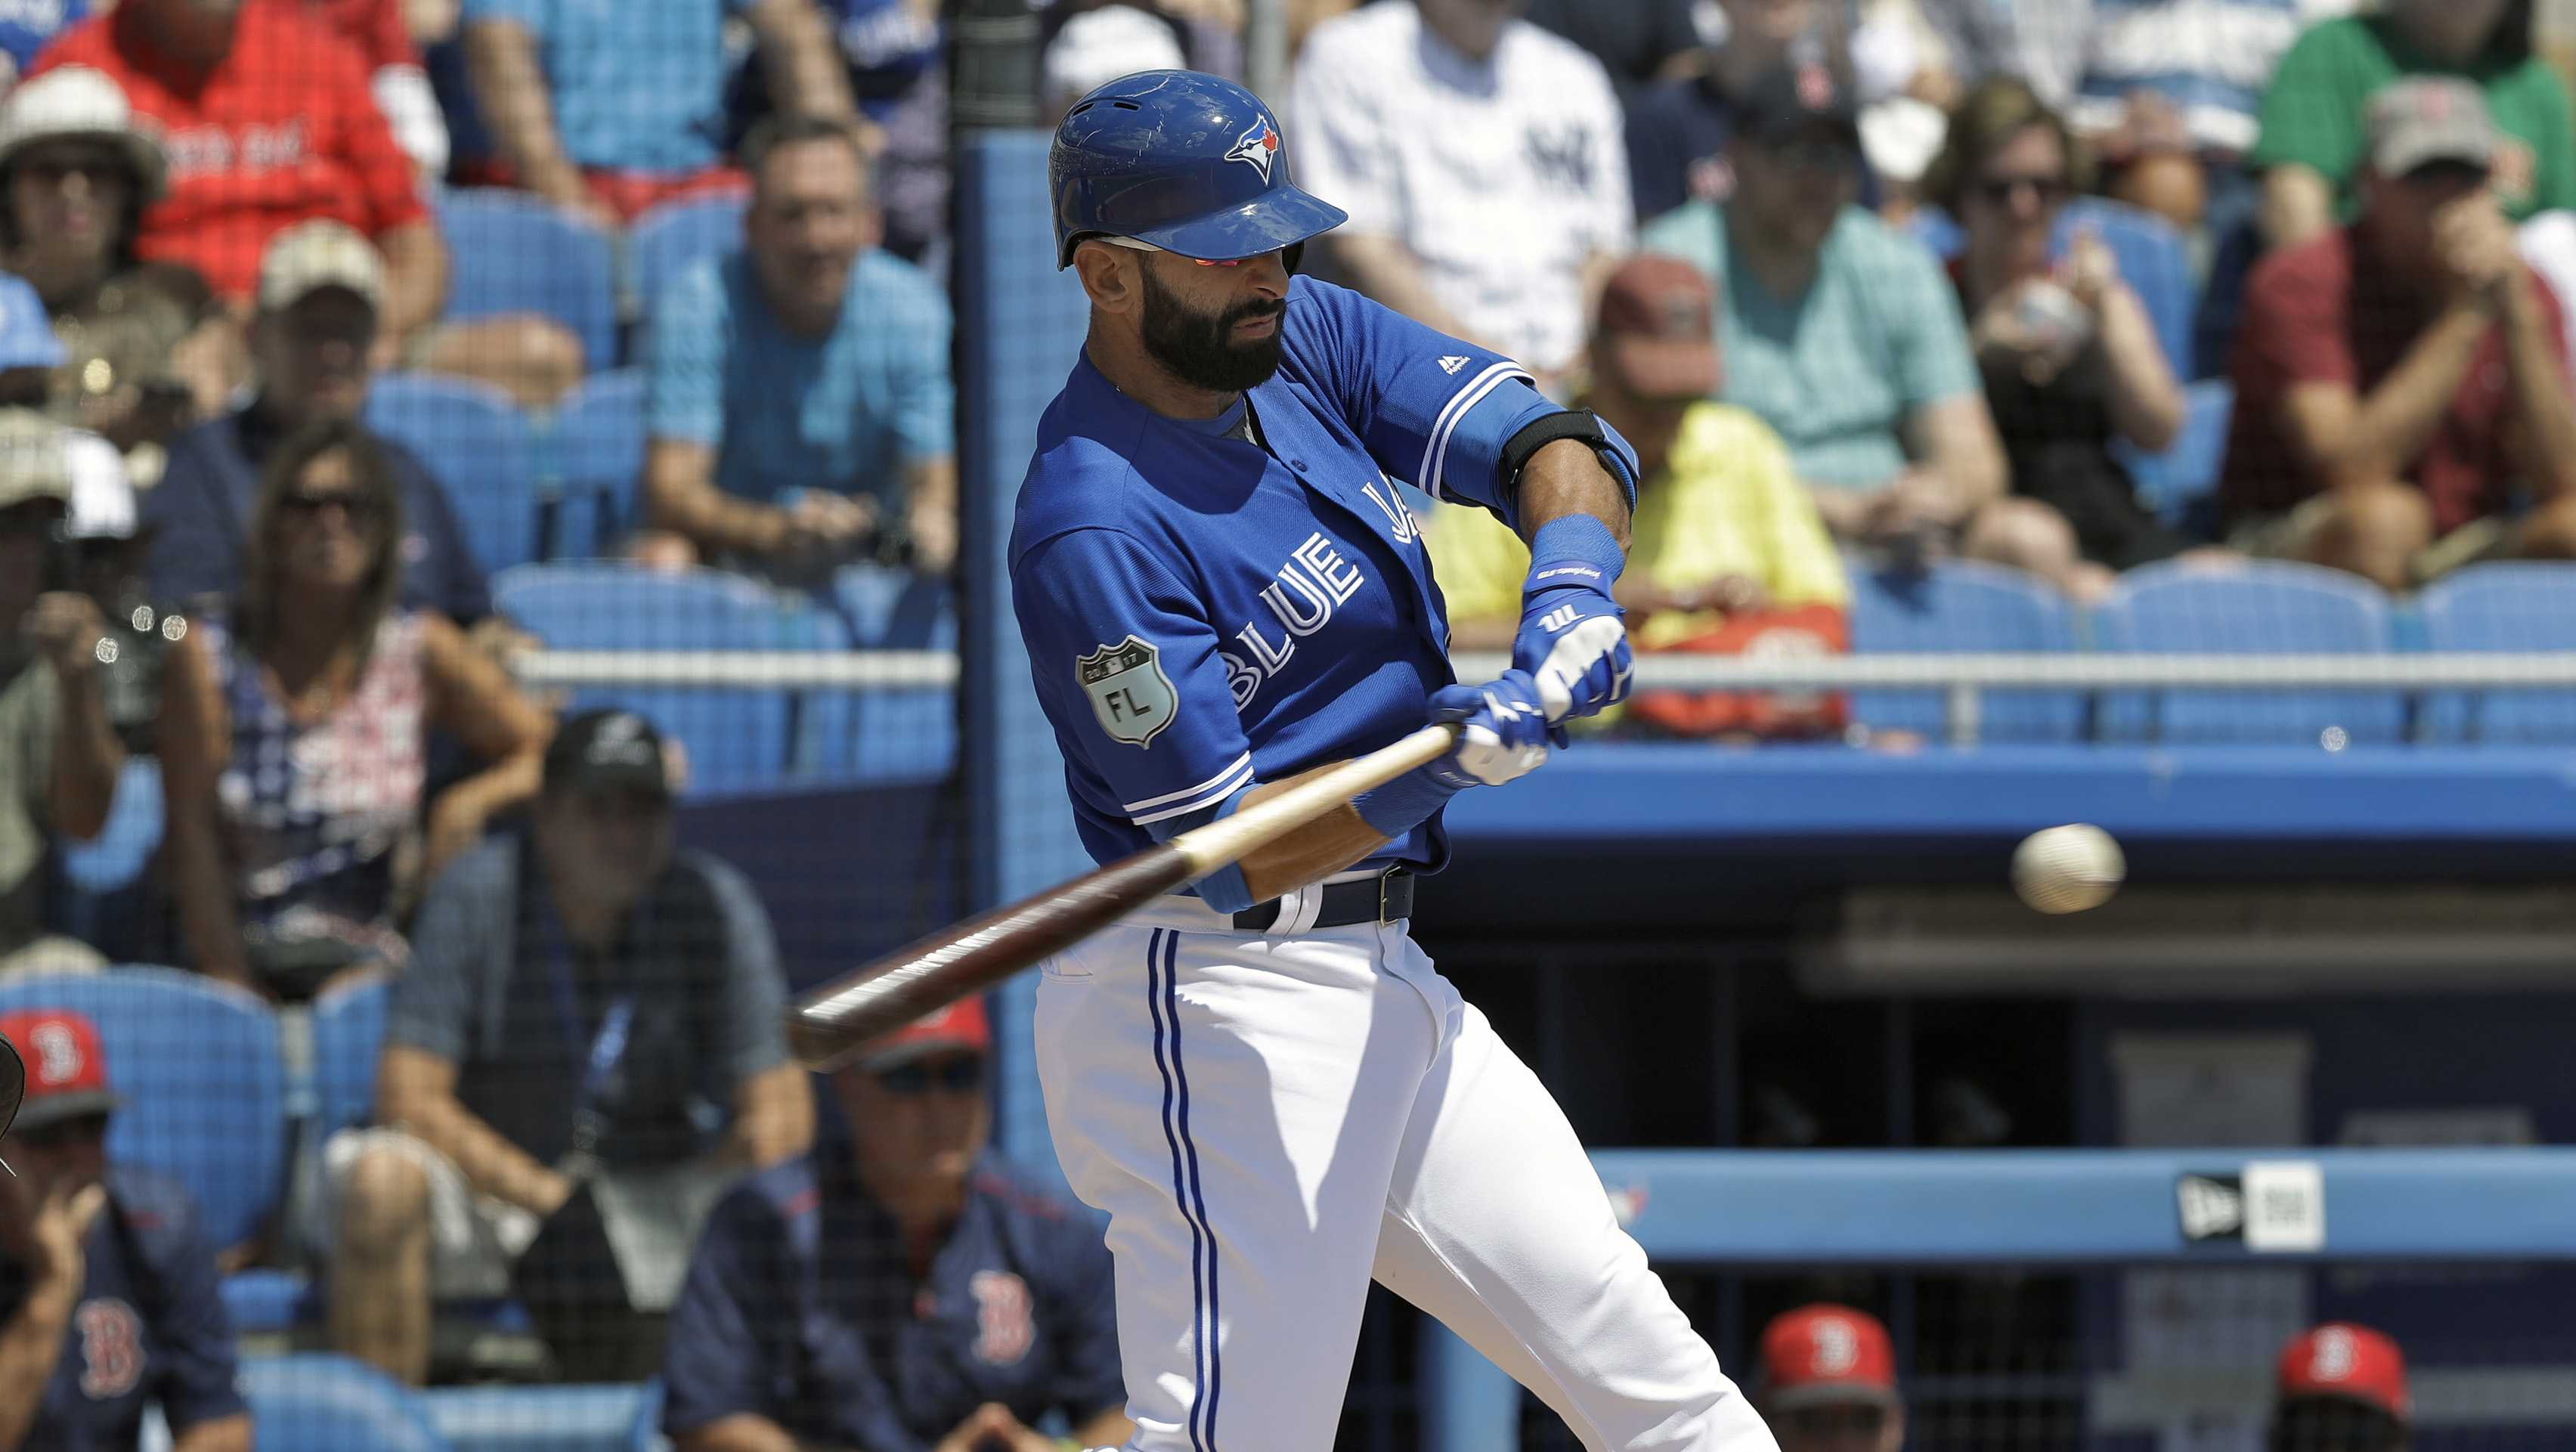 Toronto Blue Jays' Jose Bautista connects for an RBI double off Boston Red Sox starting pitcher Drew Pomeranz during the first inning of a spring training baseball game Friday, March 24, 2017, in Dunedin, Fla.